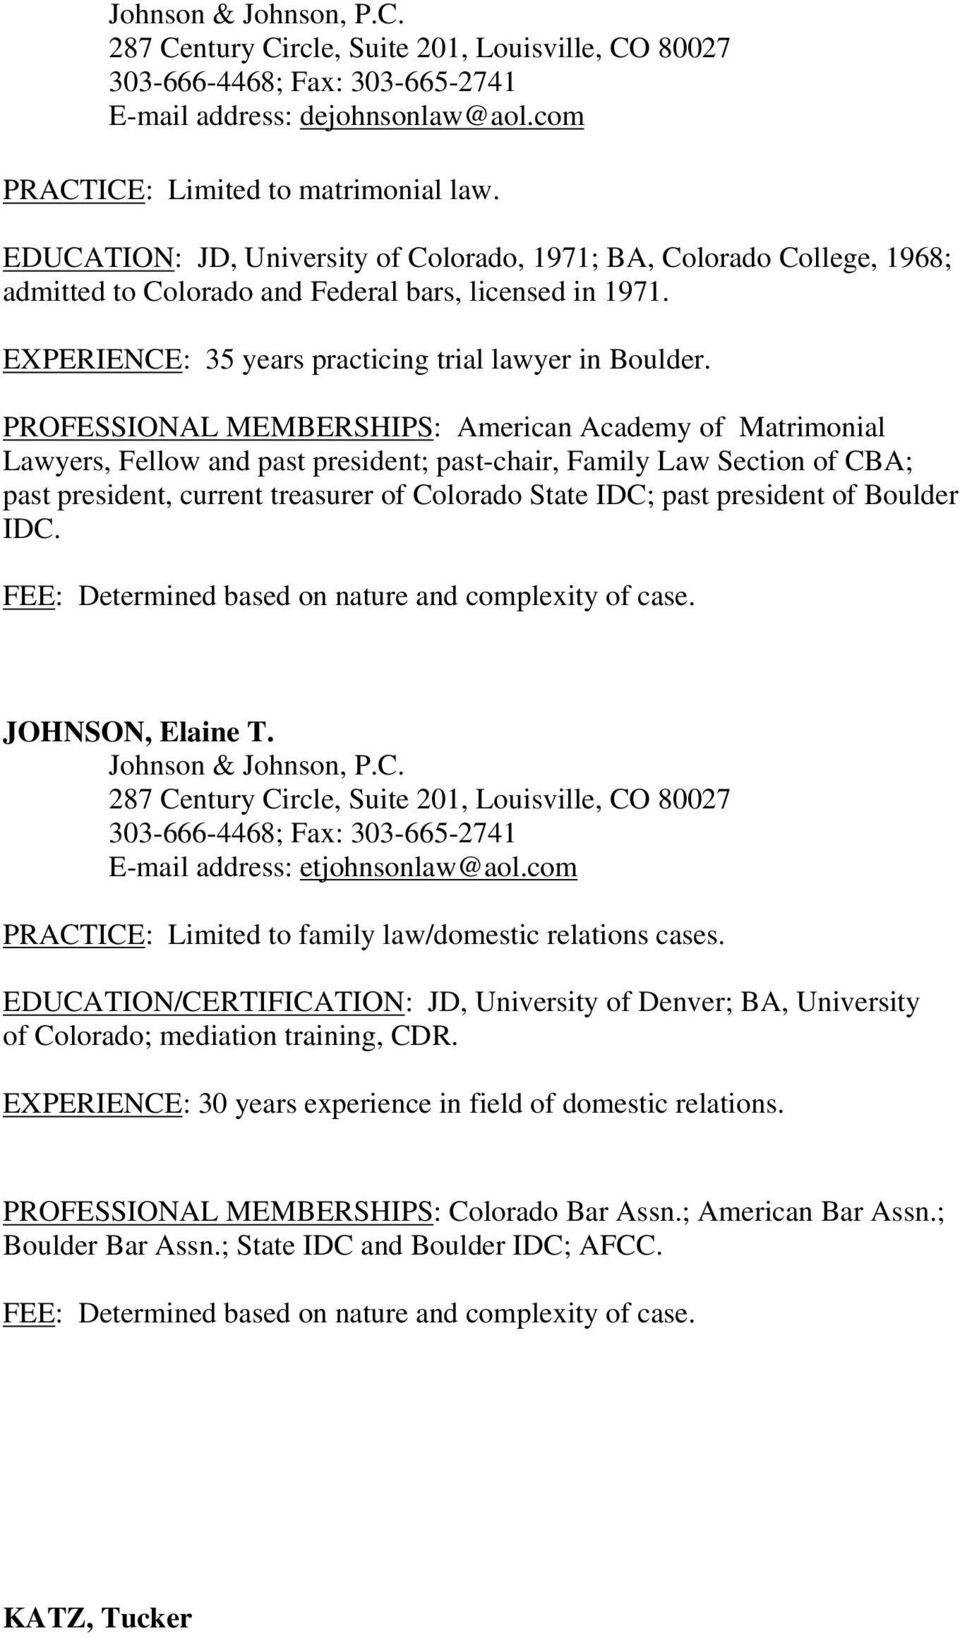 PROFESSIONAL MEMBERSHIPS: American Academy of Matrimonial Lawyers, Fellow and past president; past-chair, Family Law Section of CBA; past president, current treasurer of Colorado State IDC; past